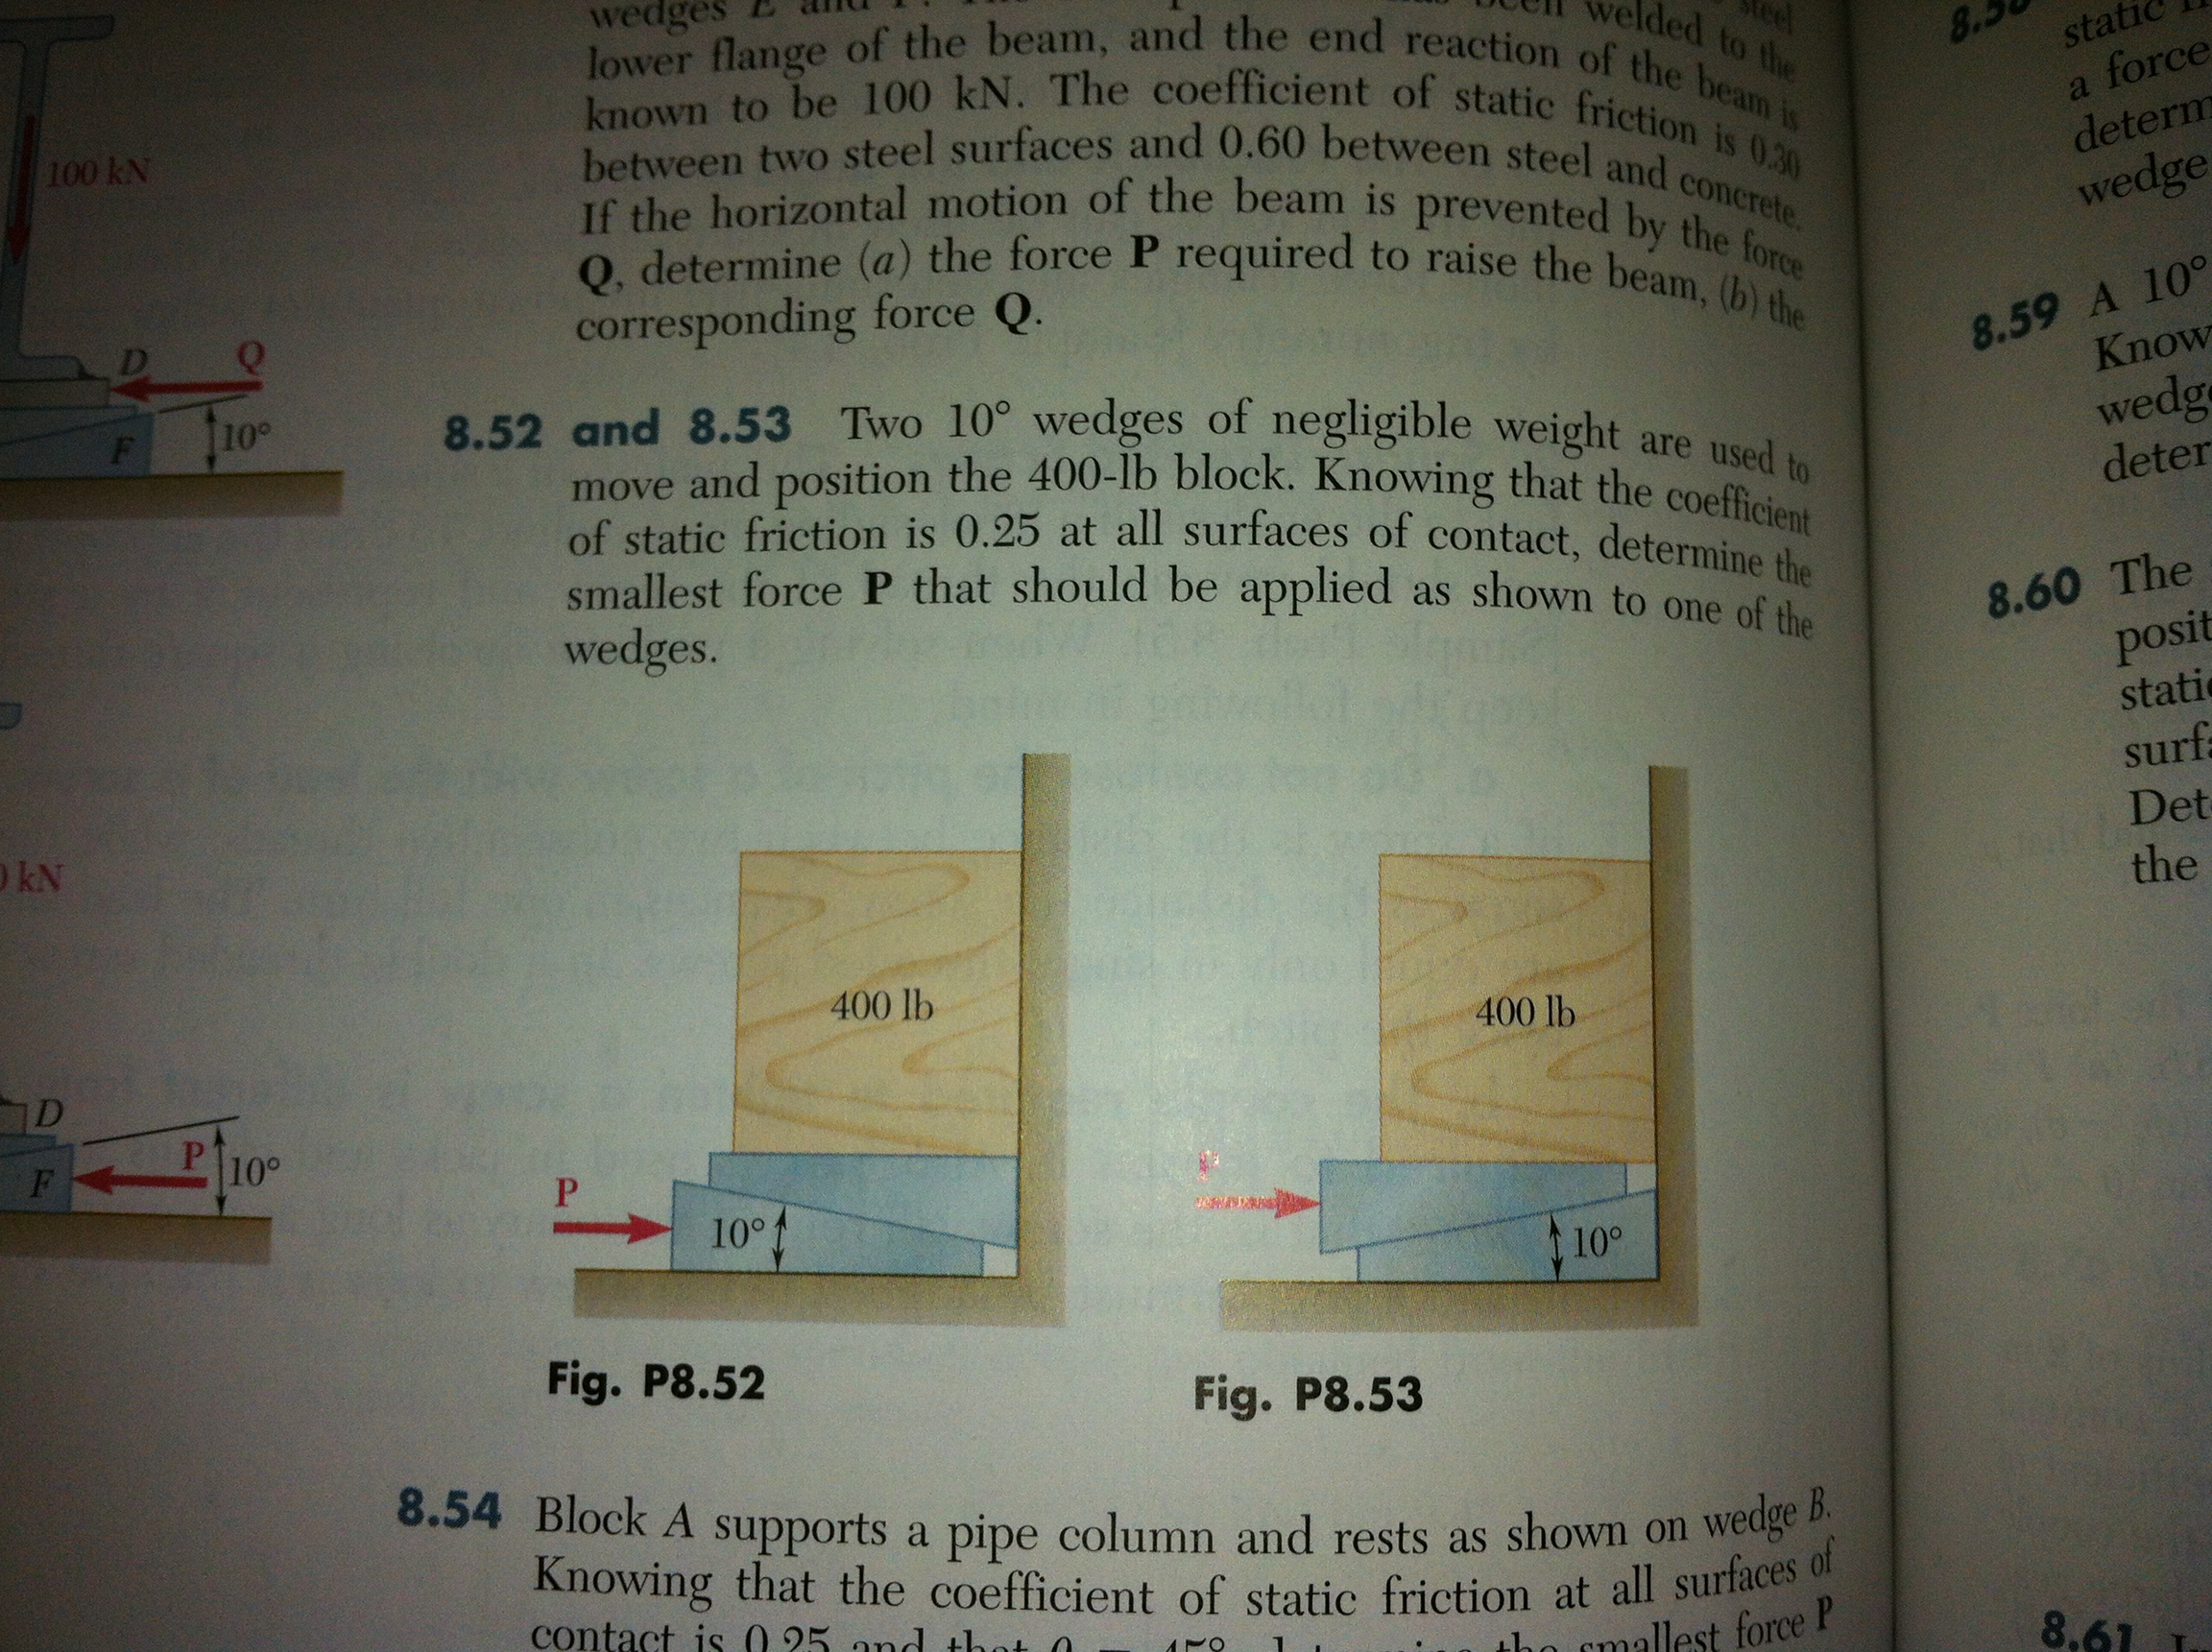 lower flange of the beam, and the end reaction o